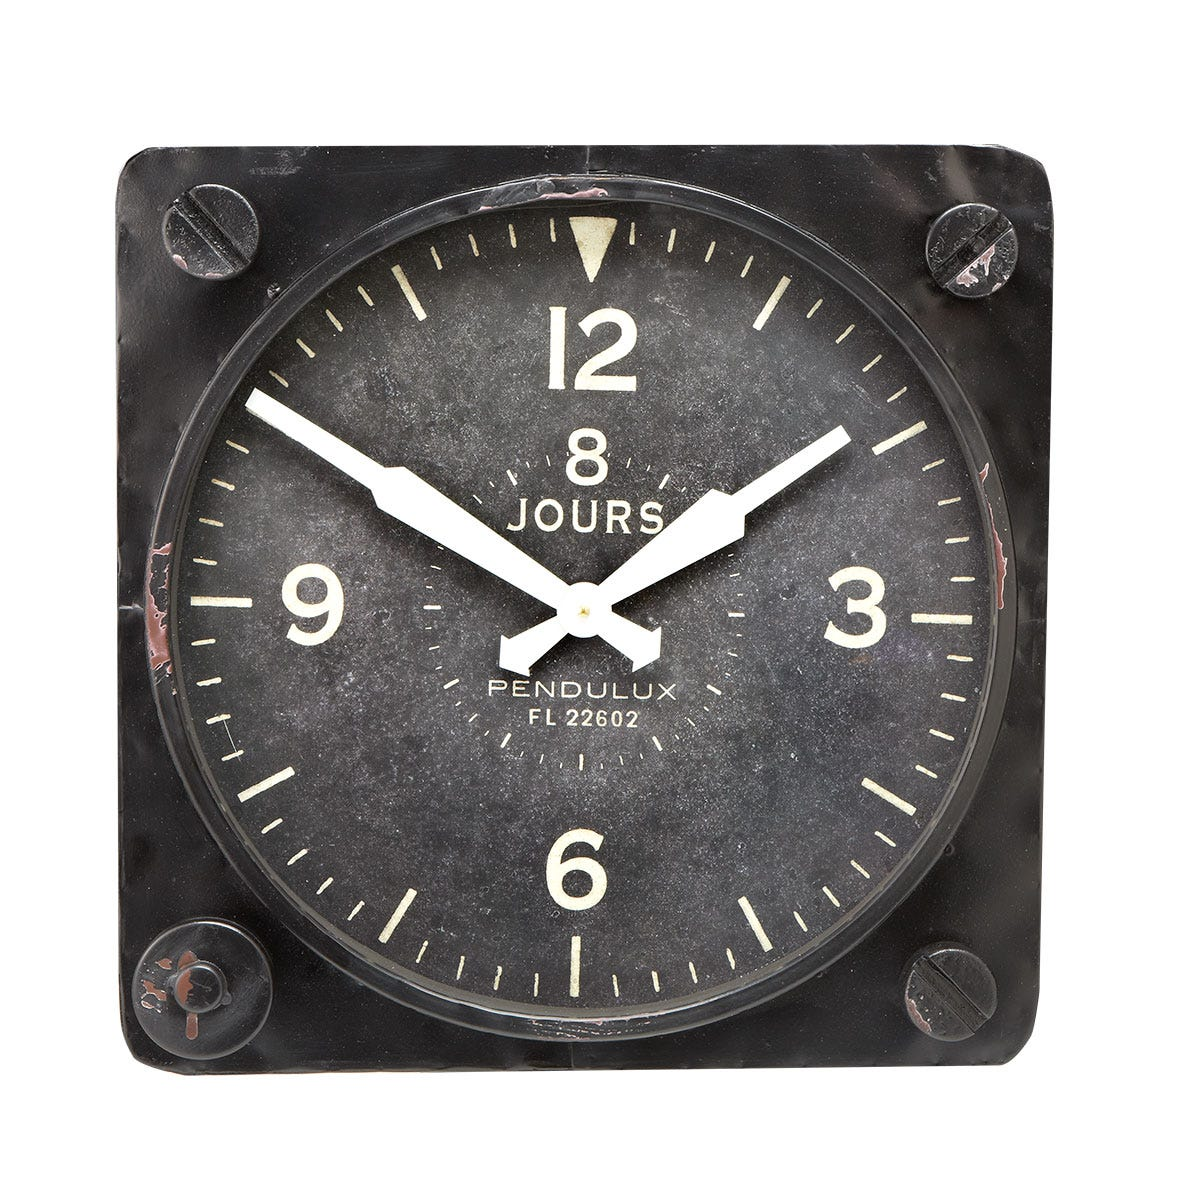 Giant altimeter wall clock clocks watches clocks from more photos amipublicfo Gallery